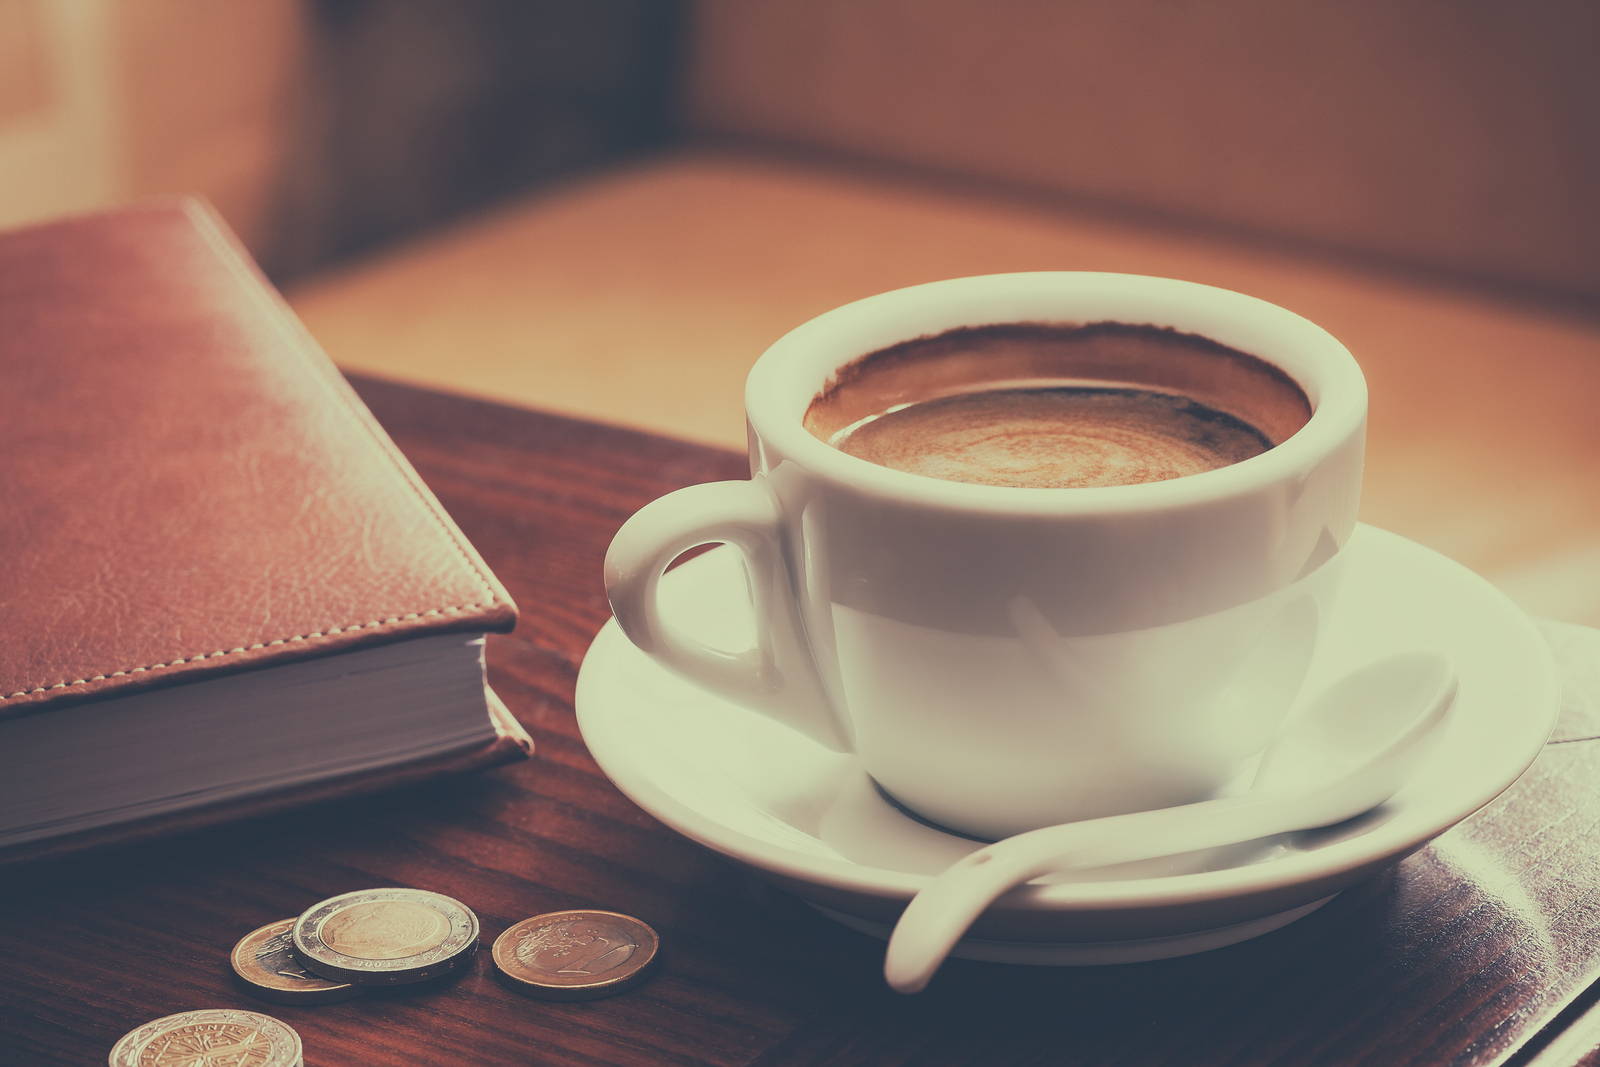 Vintage Stylized Photo Of Coffee Cup, Diary And Coins On Table I